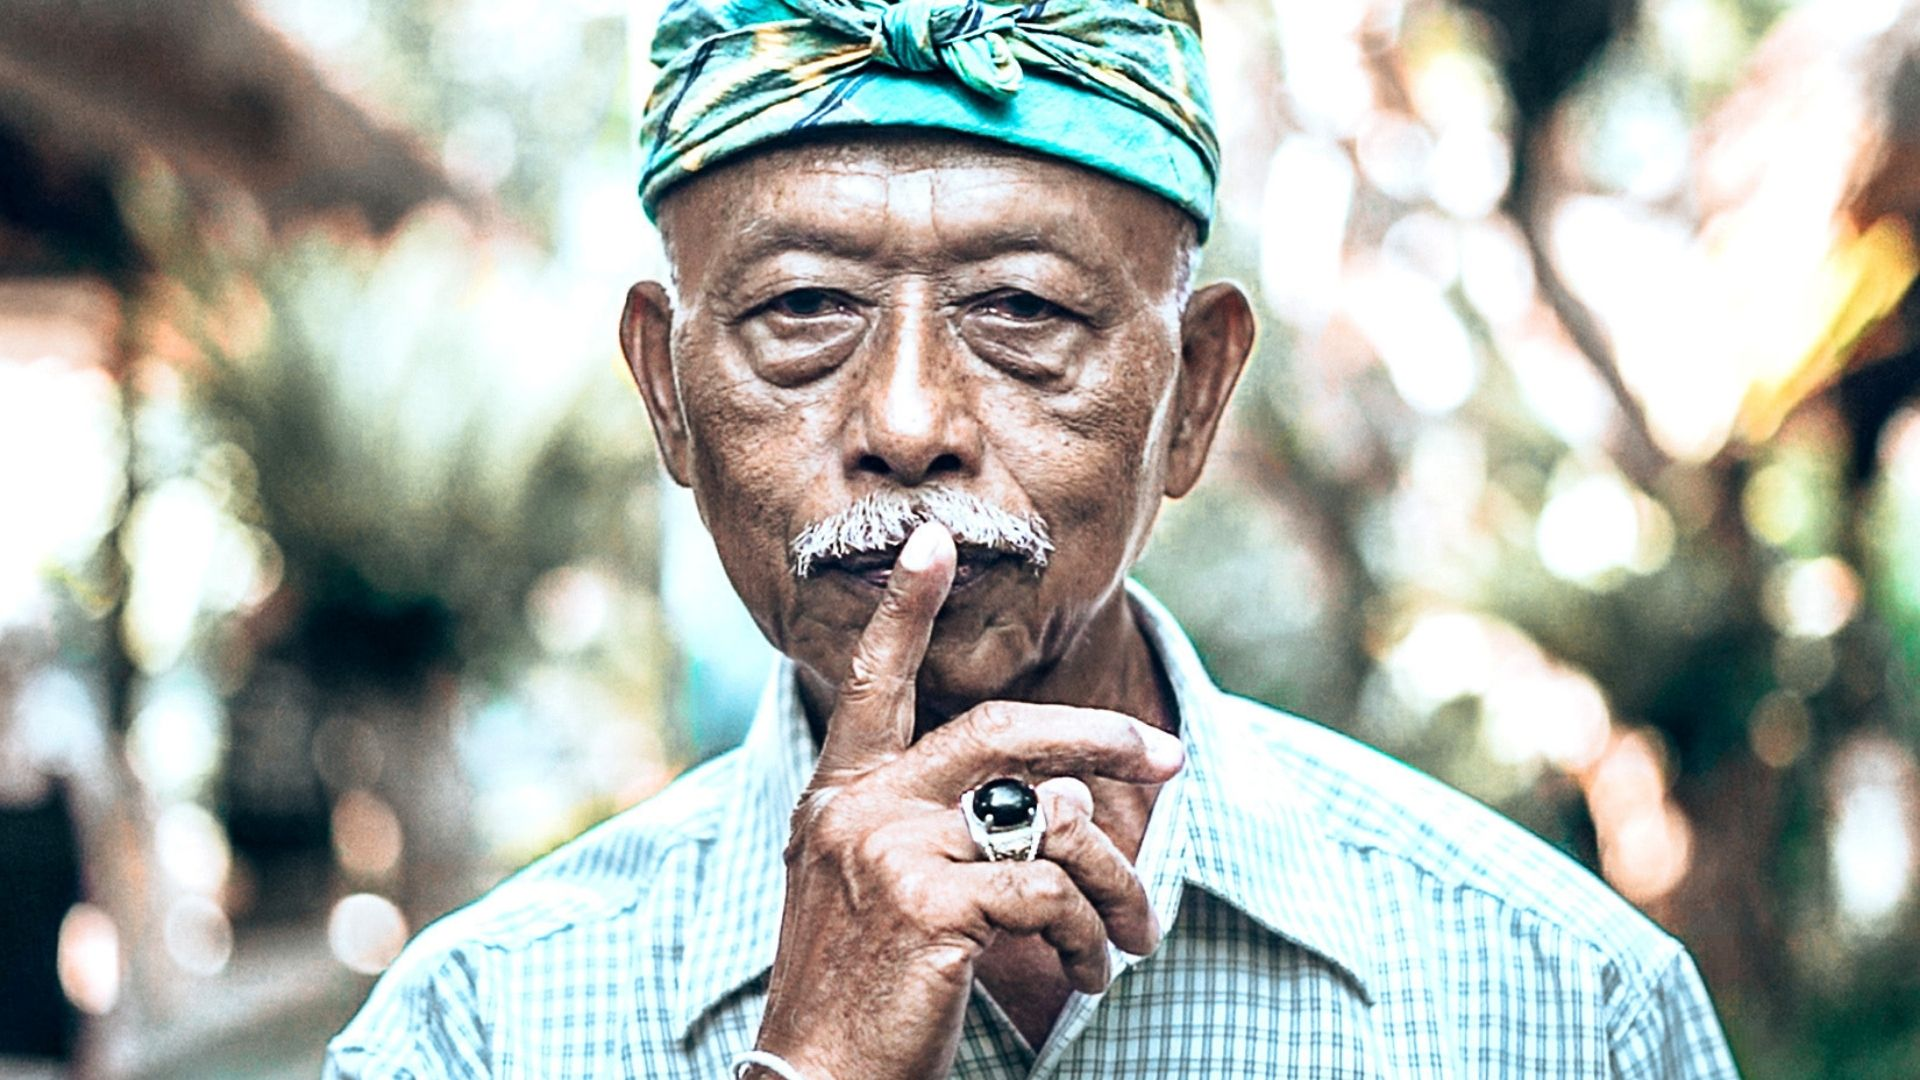 Old Balinese man with index finger on his lip to indicate silence on Nyepi Day